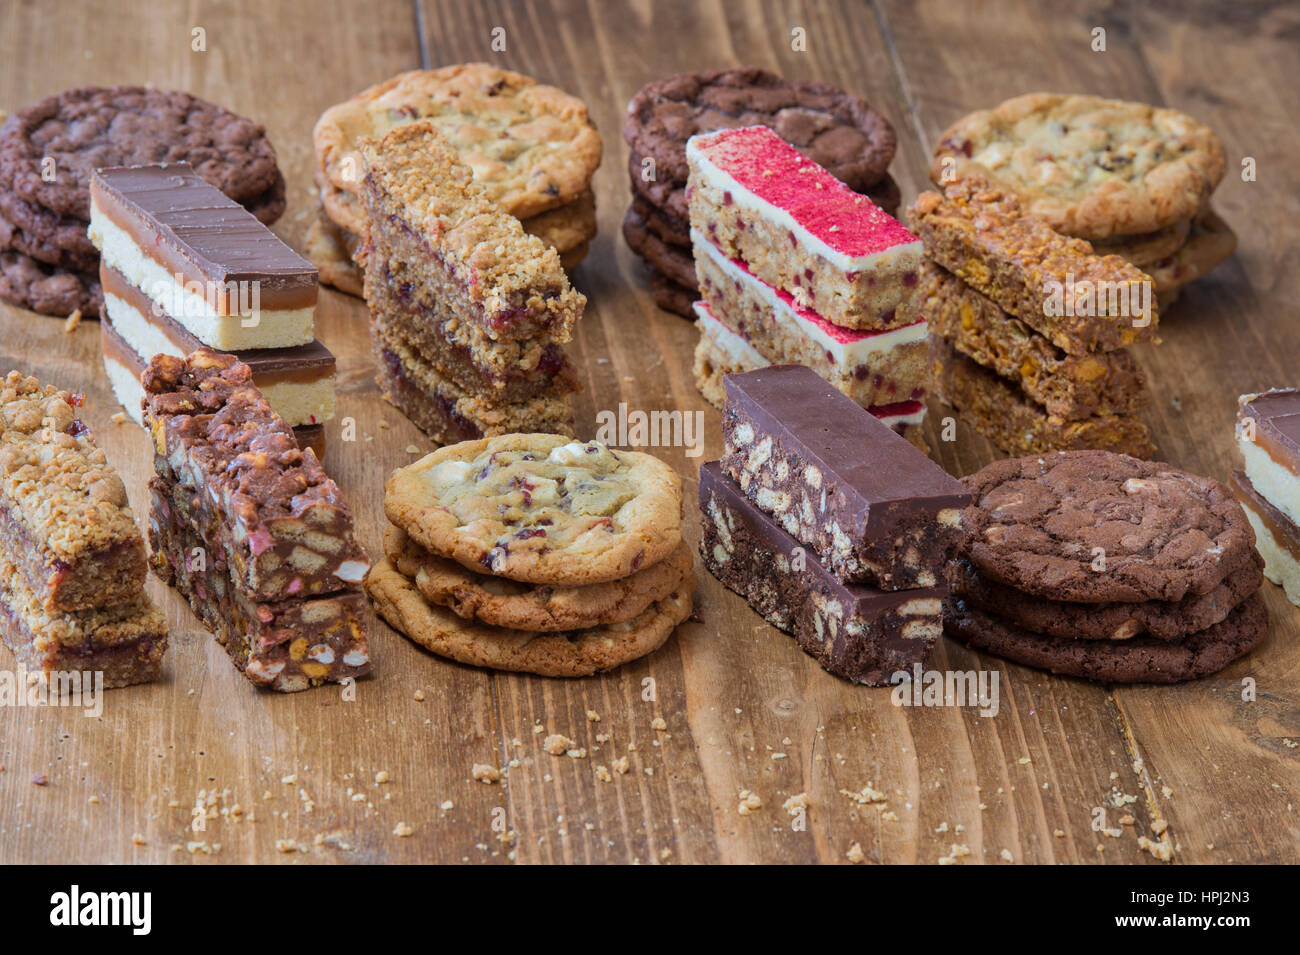 Chocolate cookies and tray bakes pattern - Stock Image